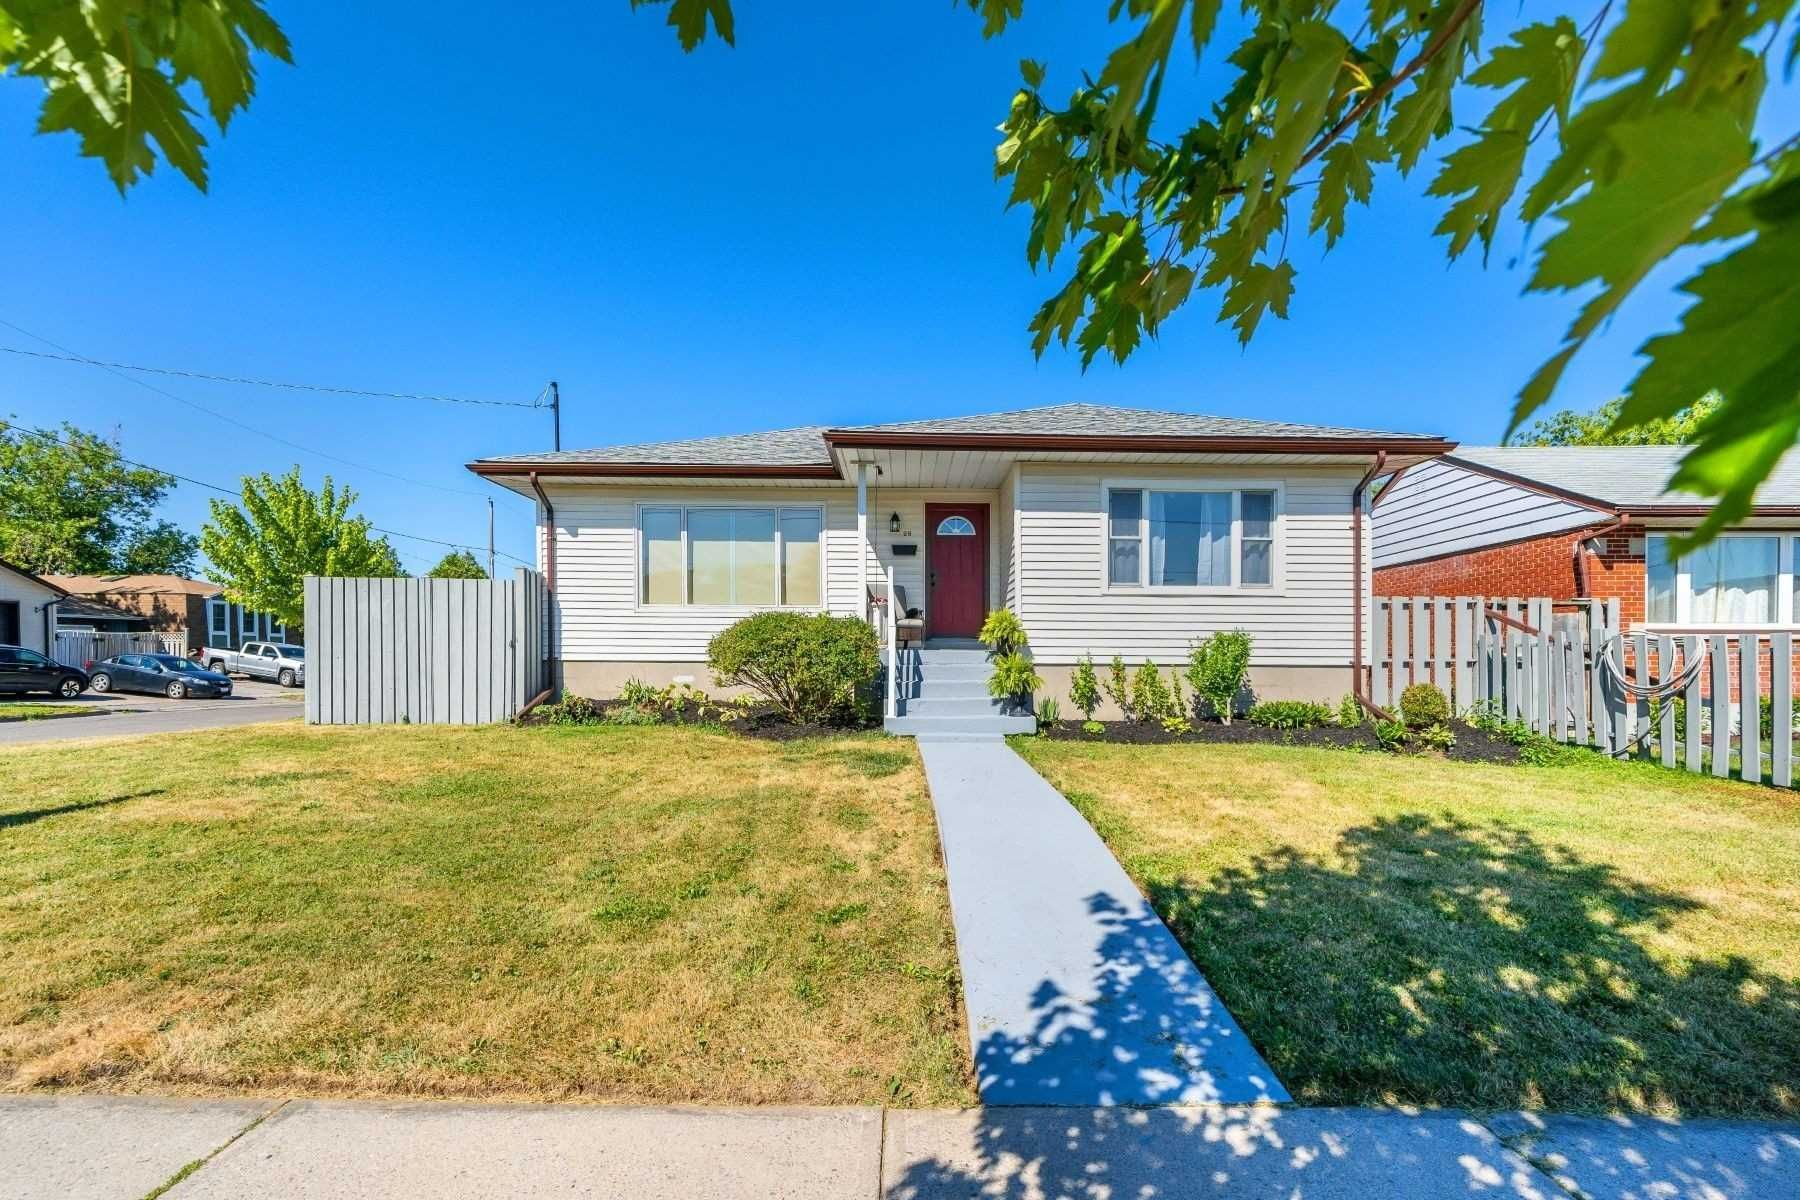 Photo 36: Photos: 26 East Lawn Street in Oshawa: Donevan House (Bungalow) for sale : MLS®# E4818284